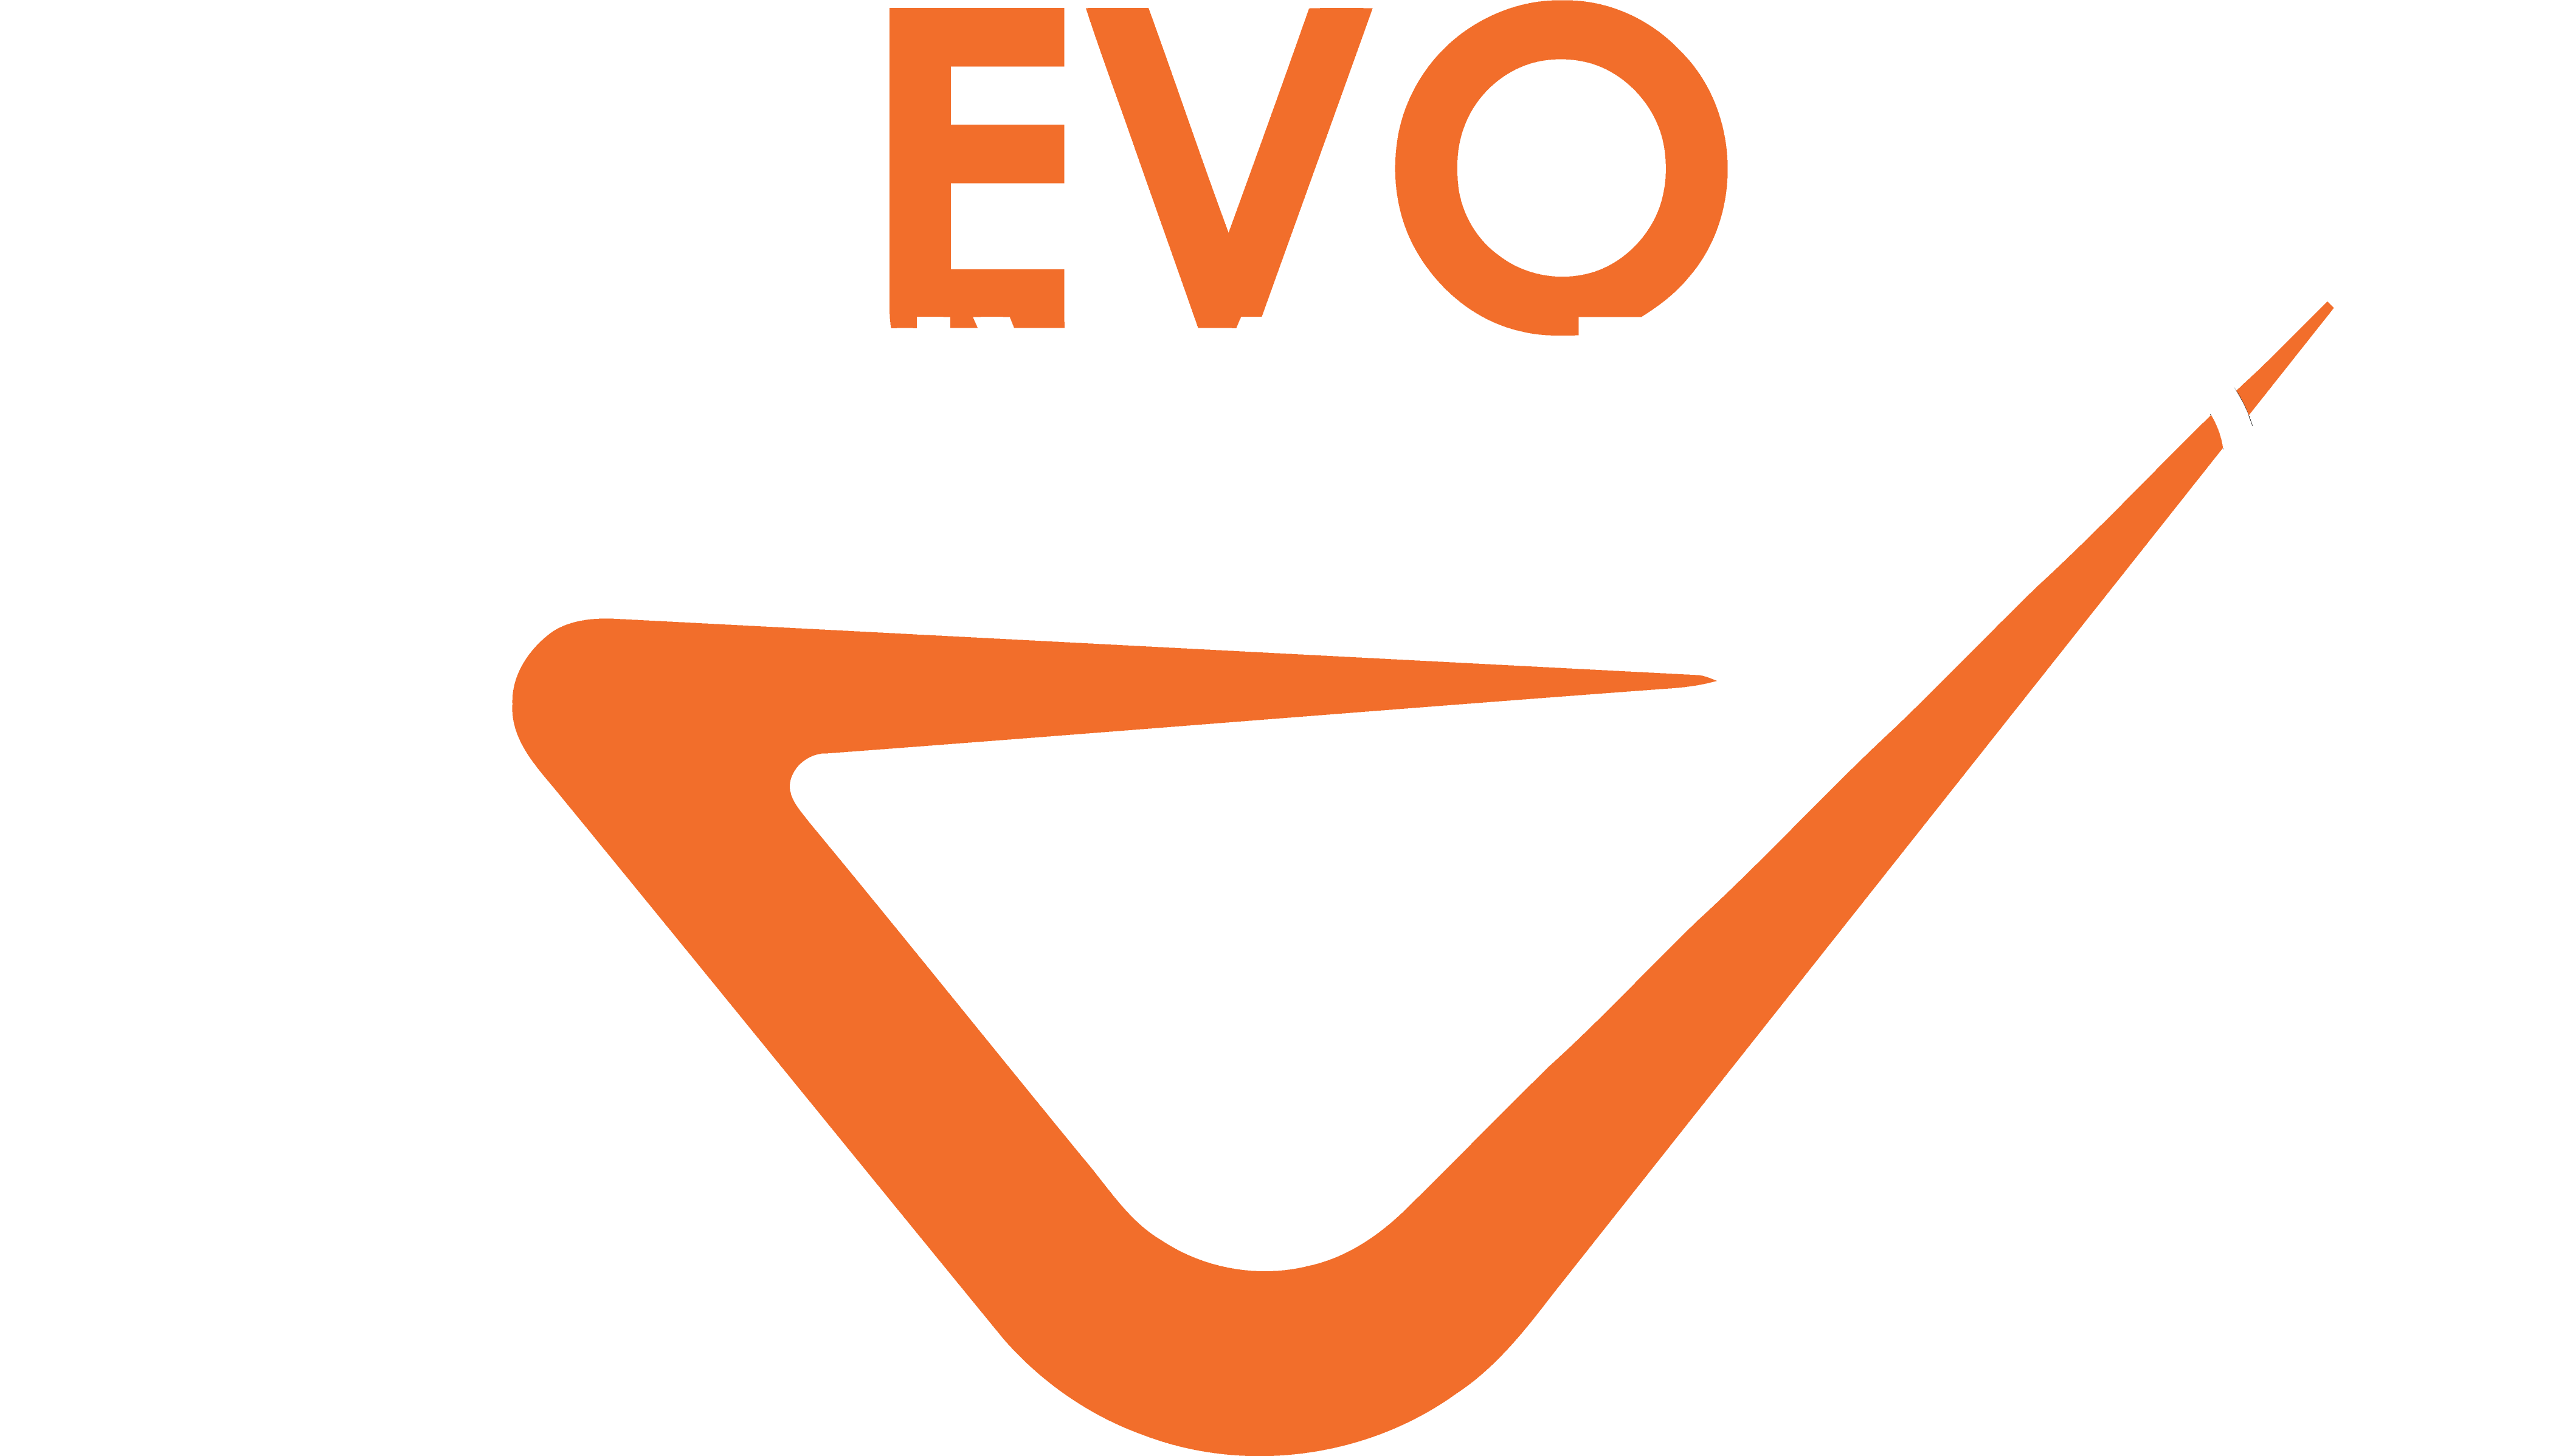 Evo Activation Oy